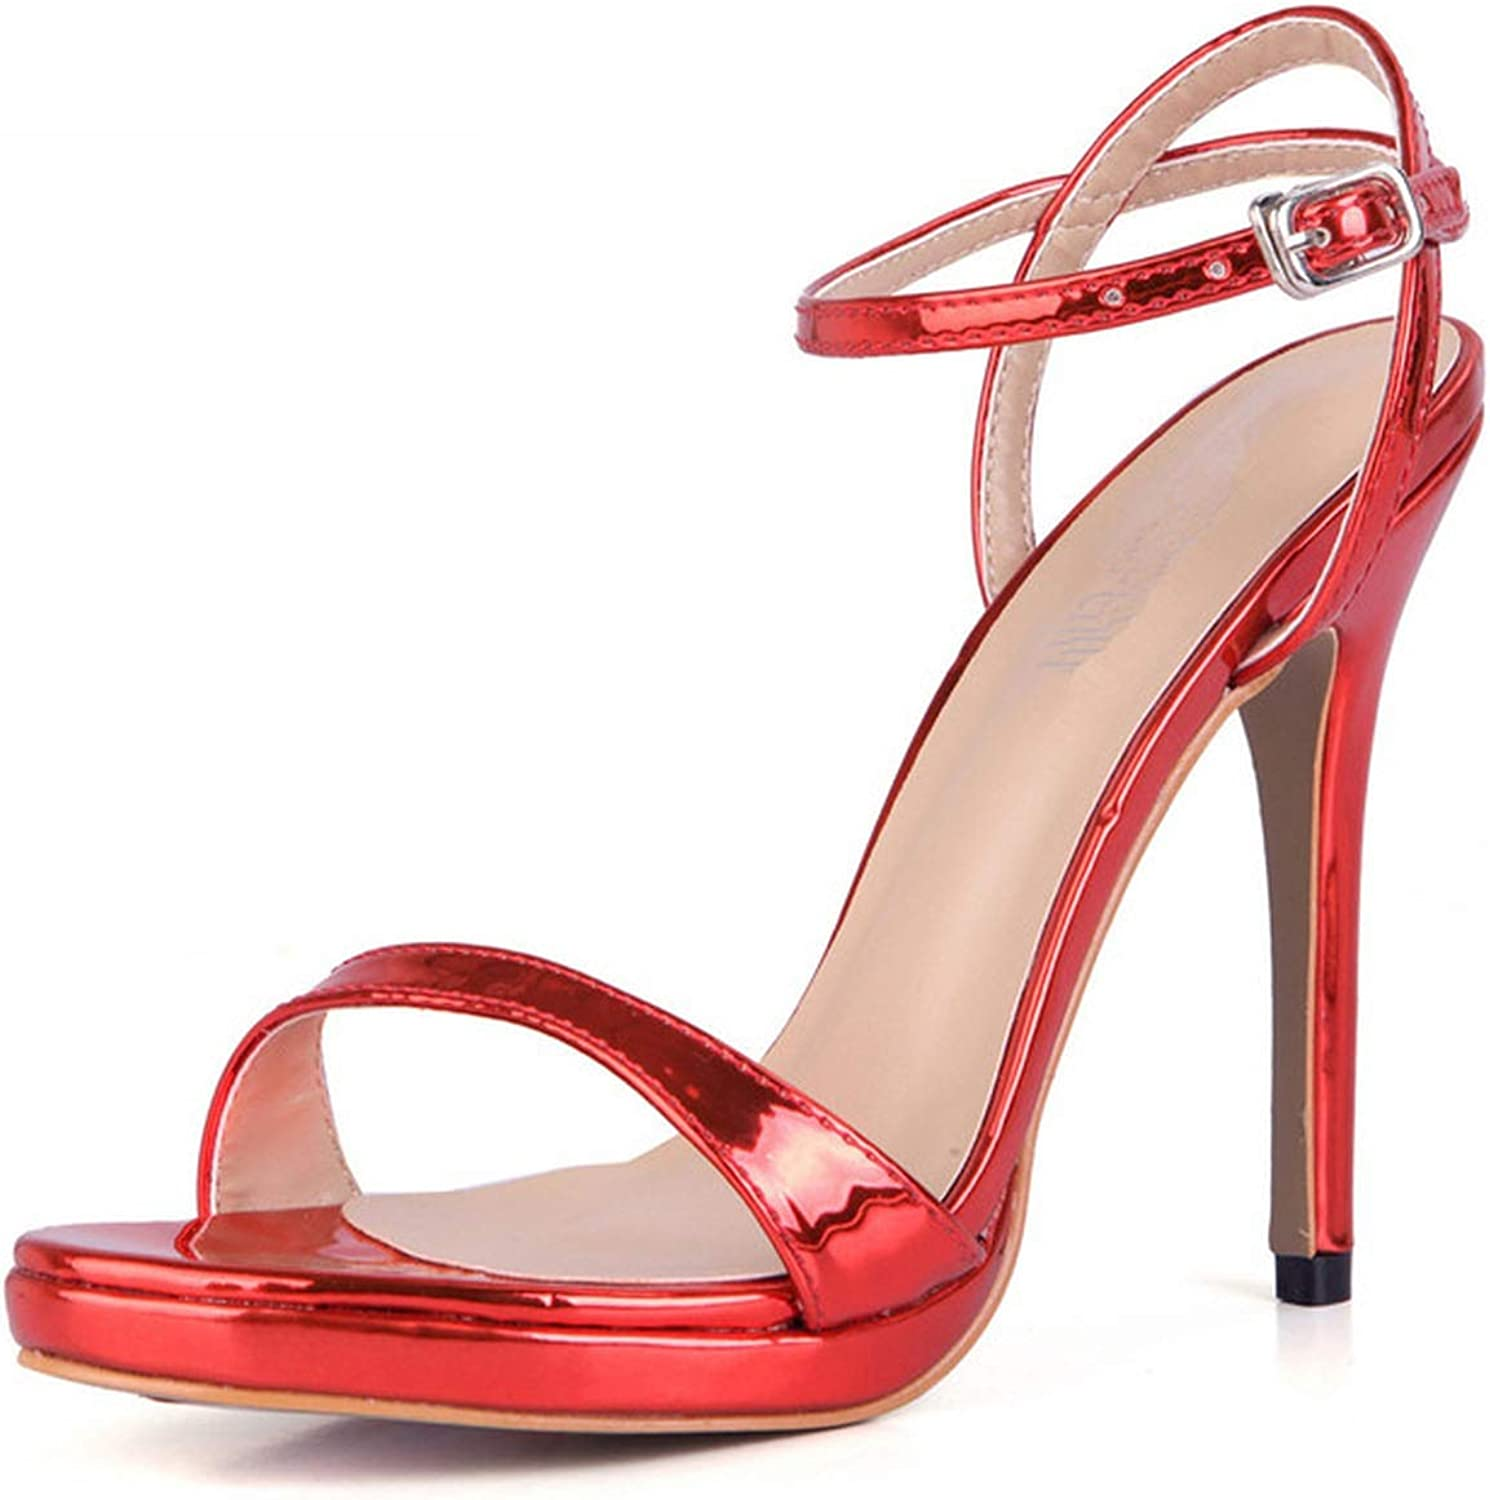 Summer Sexy Sandals 12 cm High Heels Ankle Strap shoes Woman Patent Leather Pumps